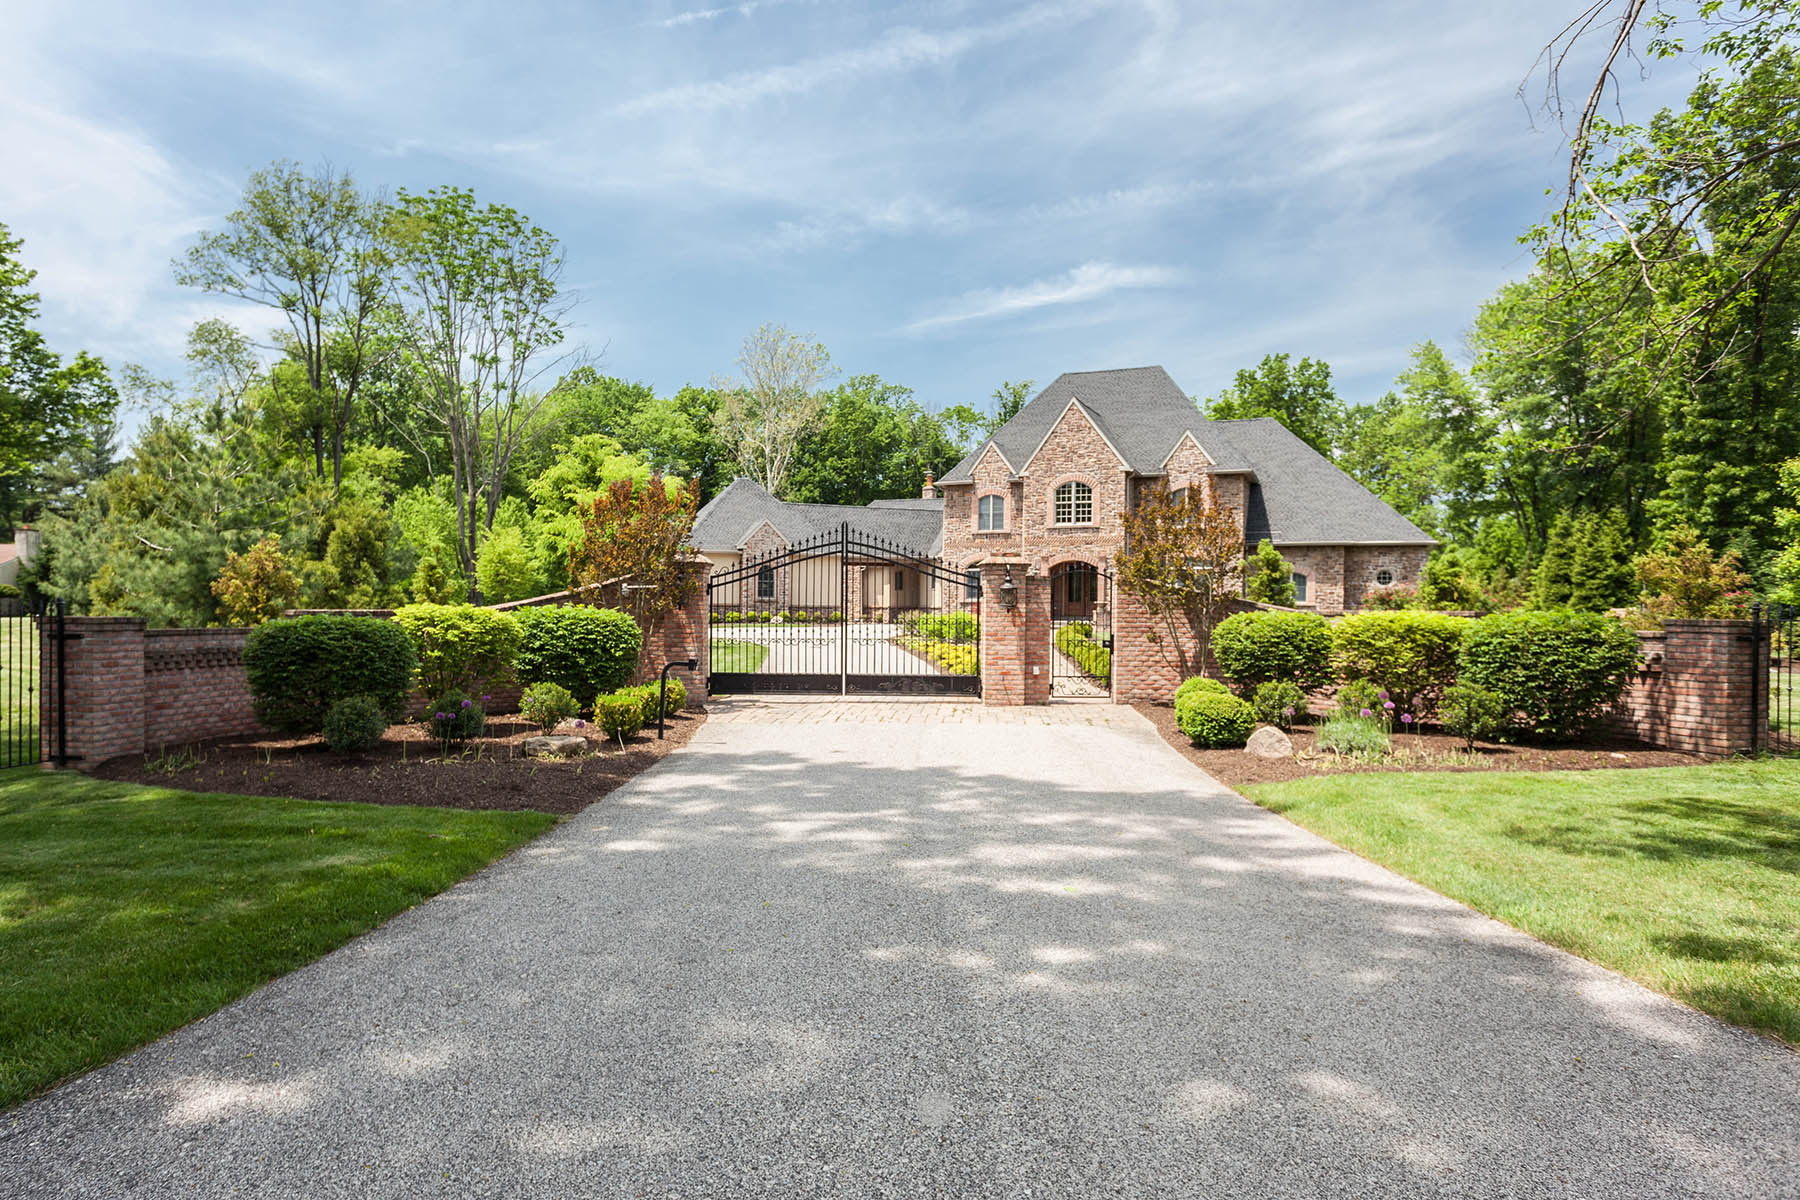 Single Family Home for Sale at Blue Bell, PA 1599 Walton Rd Blue Bell, 19422 United States